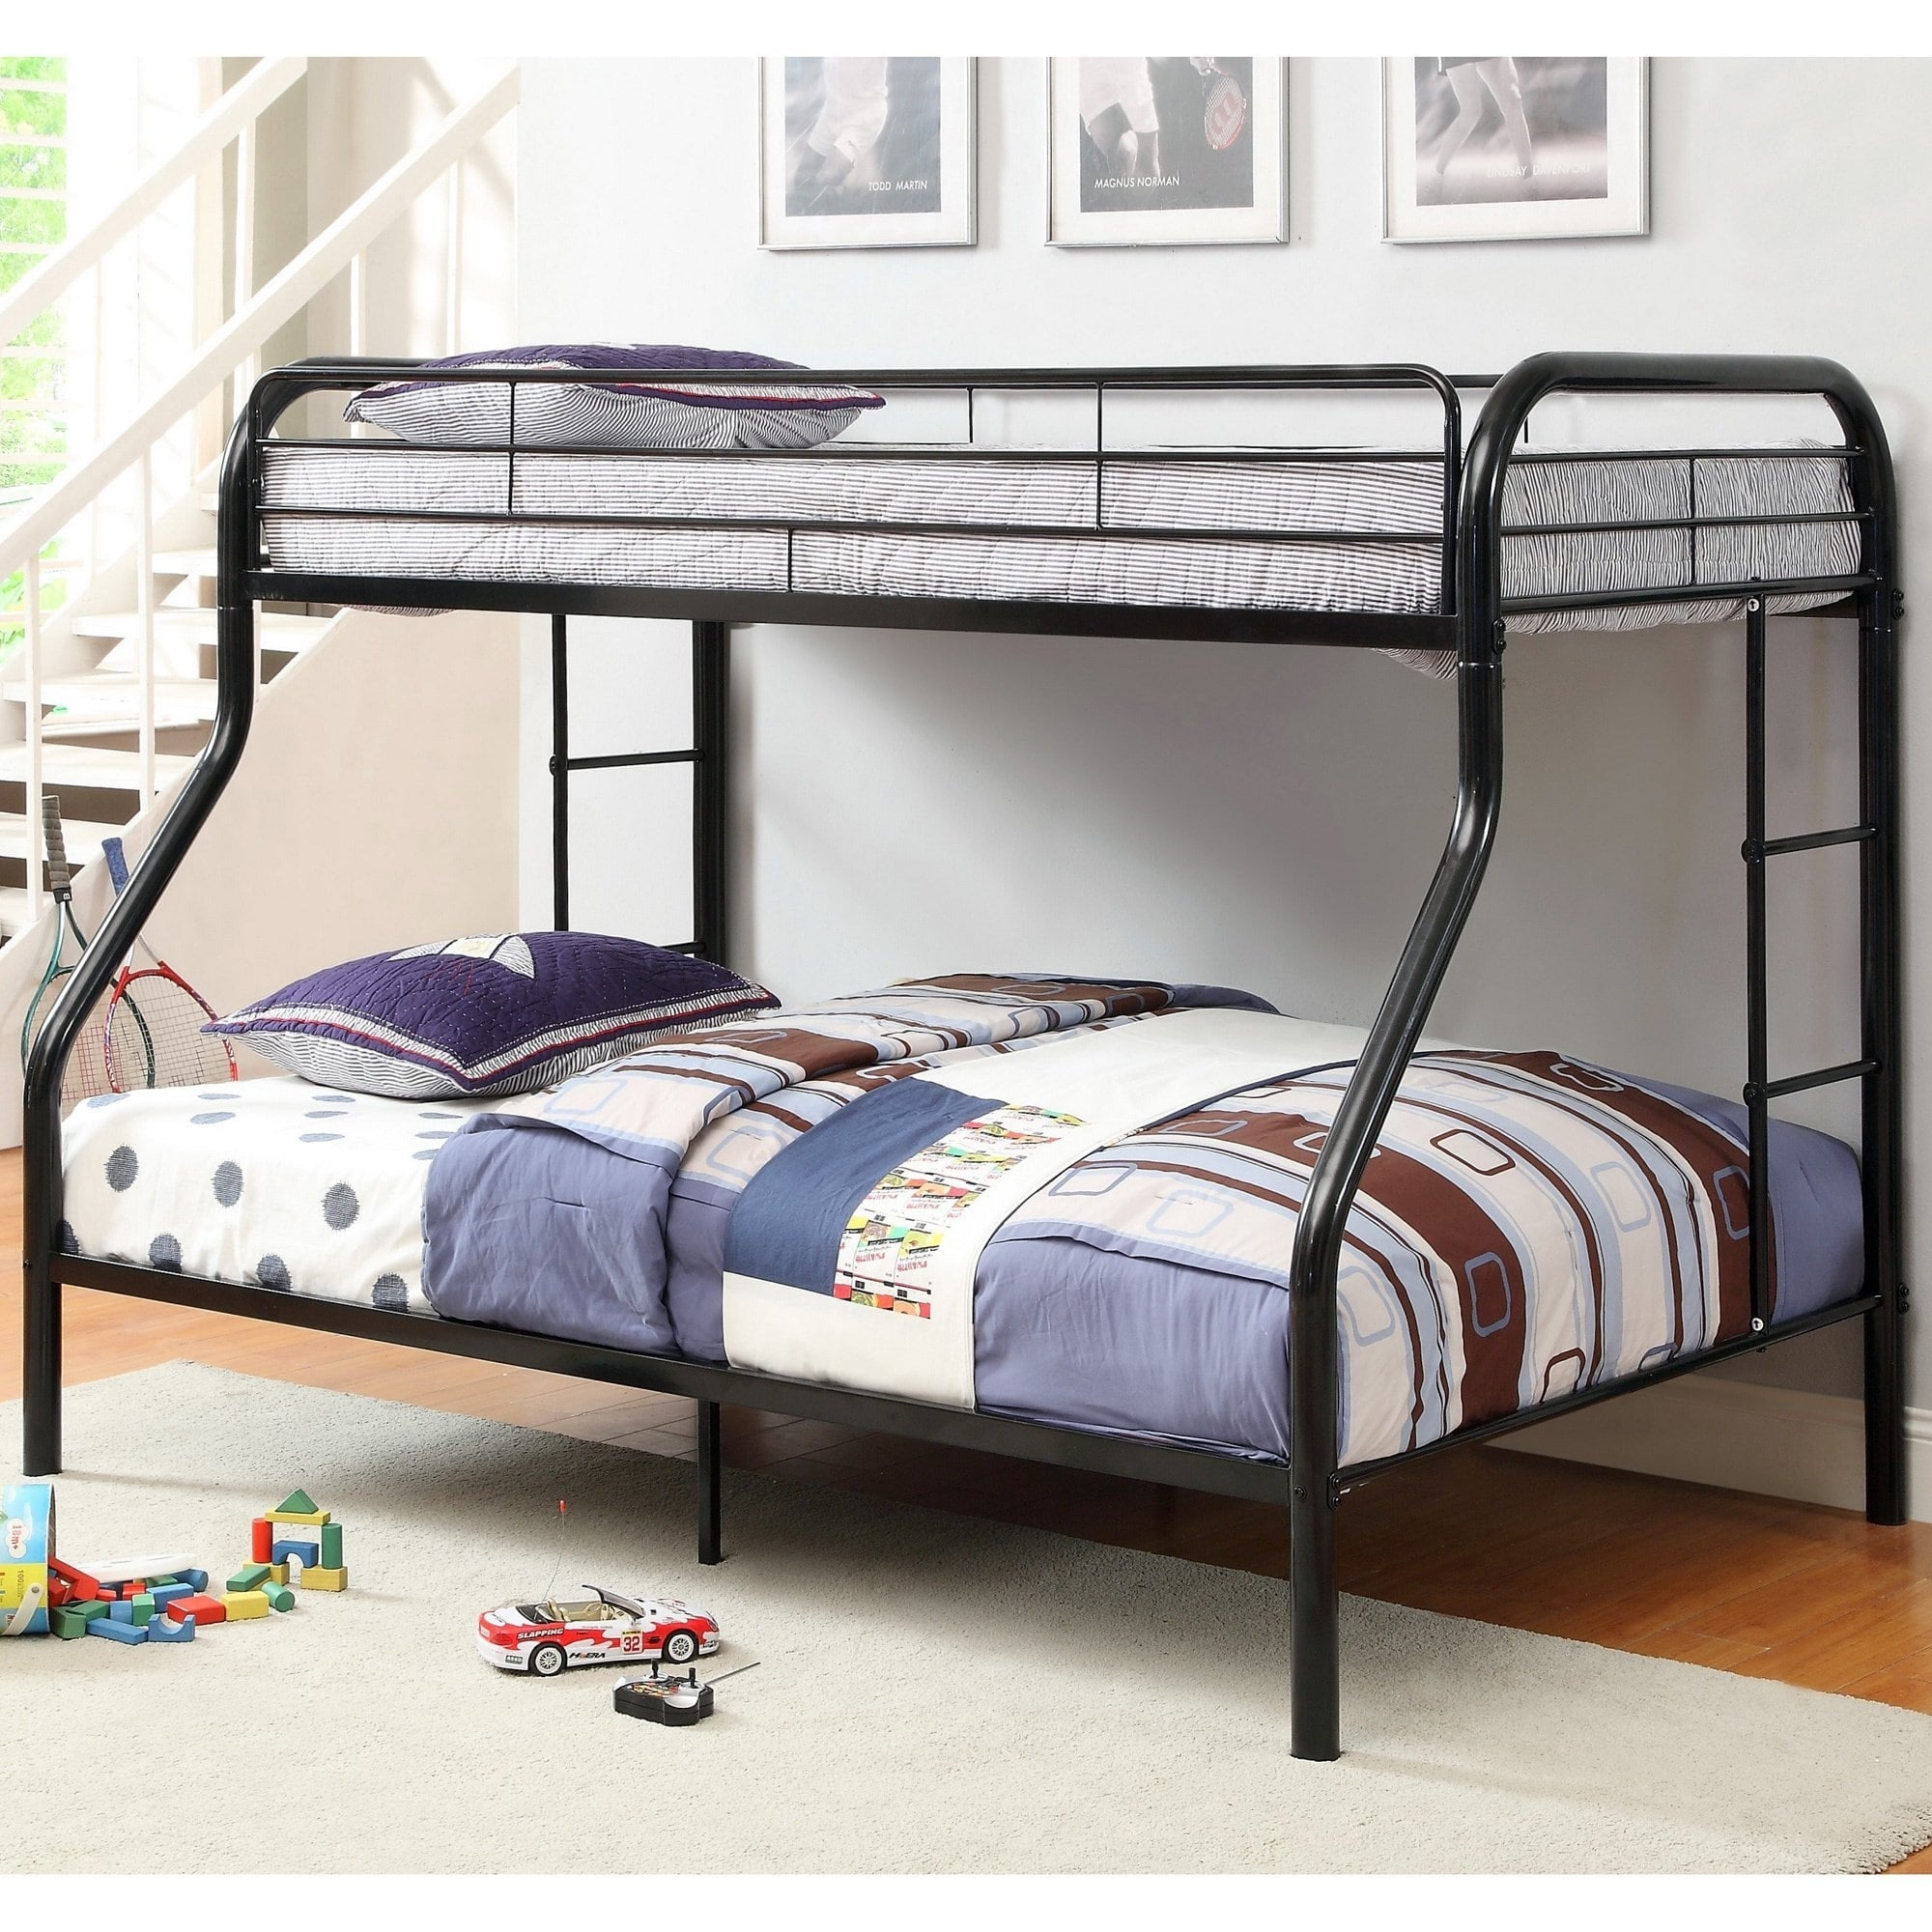 Furniture Of America Hind Transitional Orange Twin Full Metal Bunk Bed Overstock 8876701